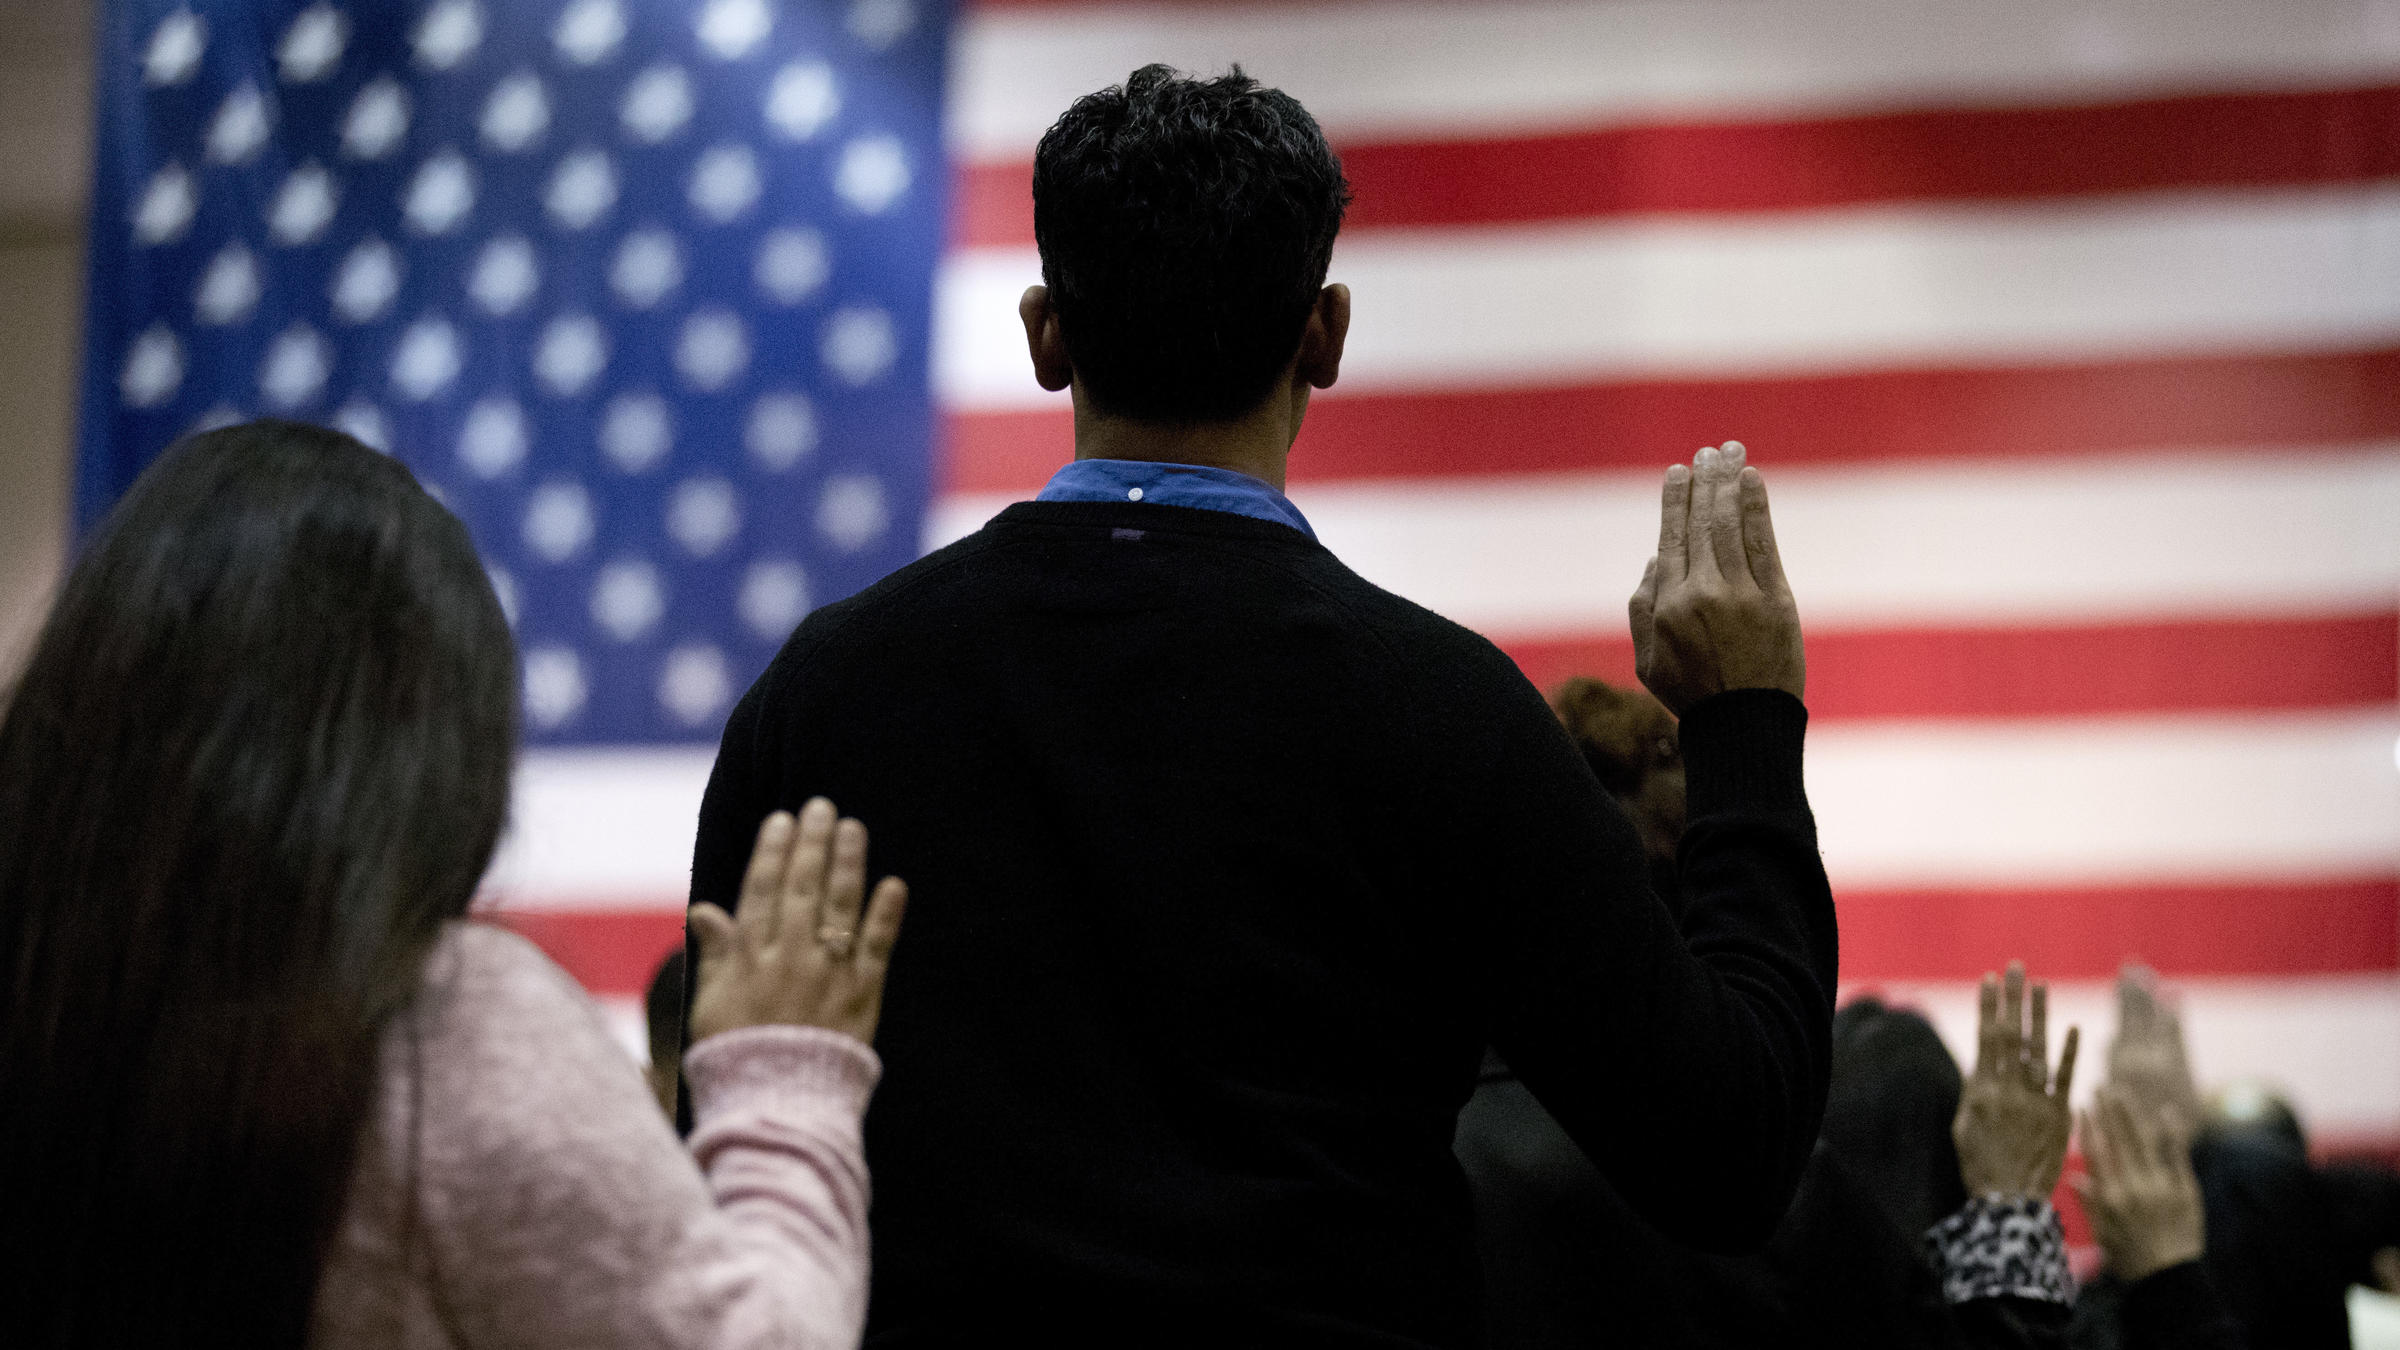 Is America Exceptional?